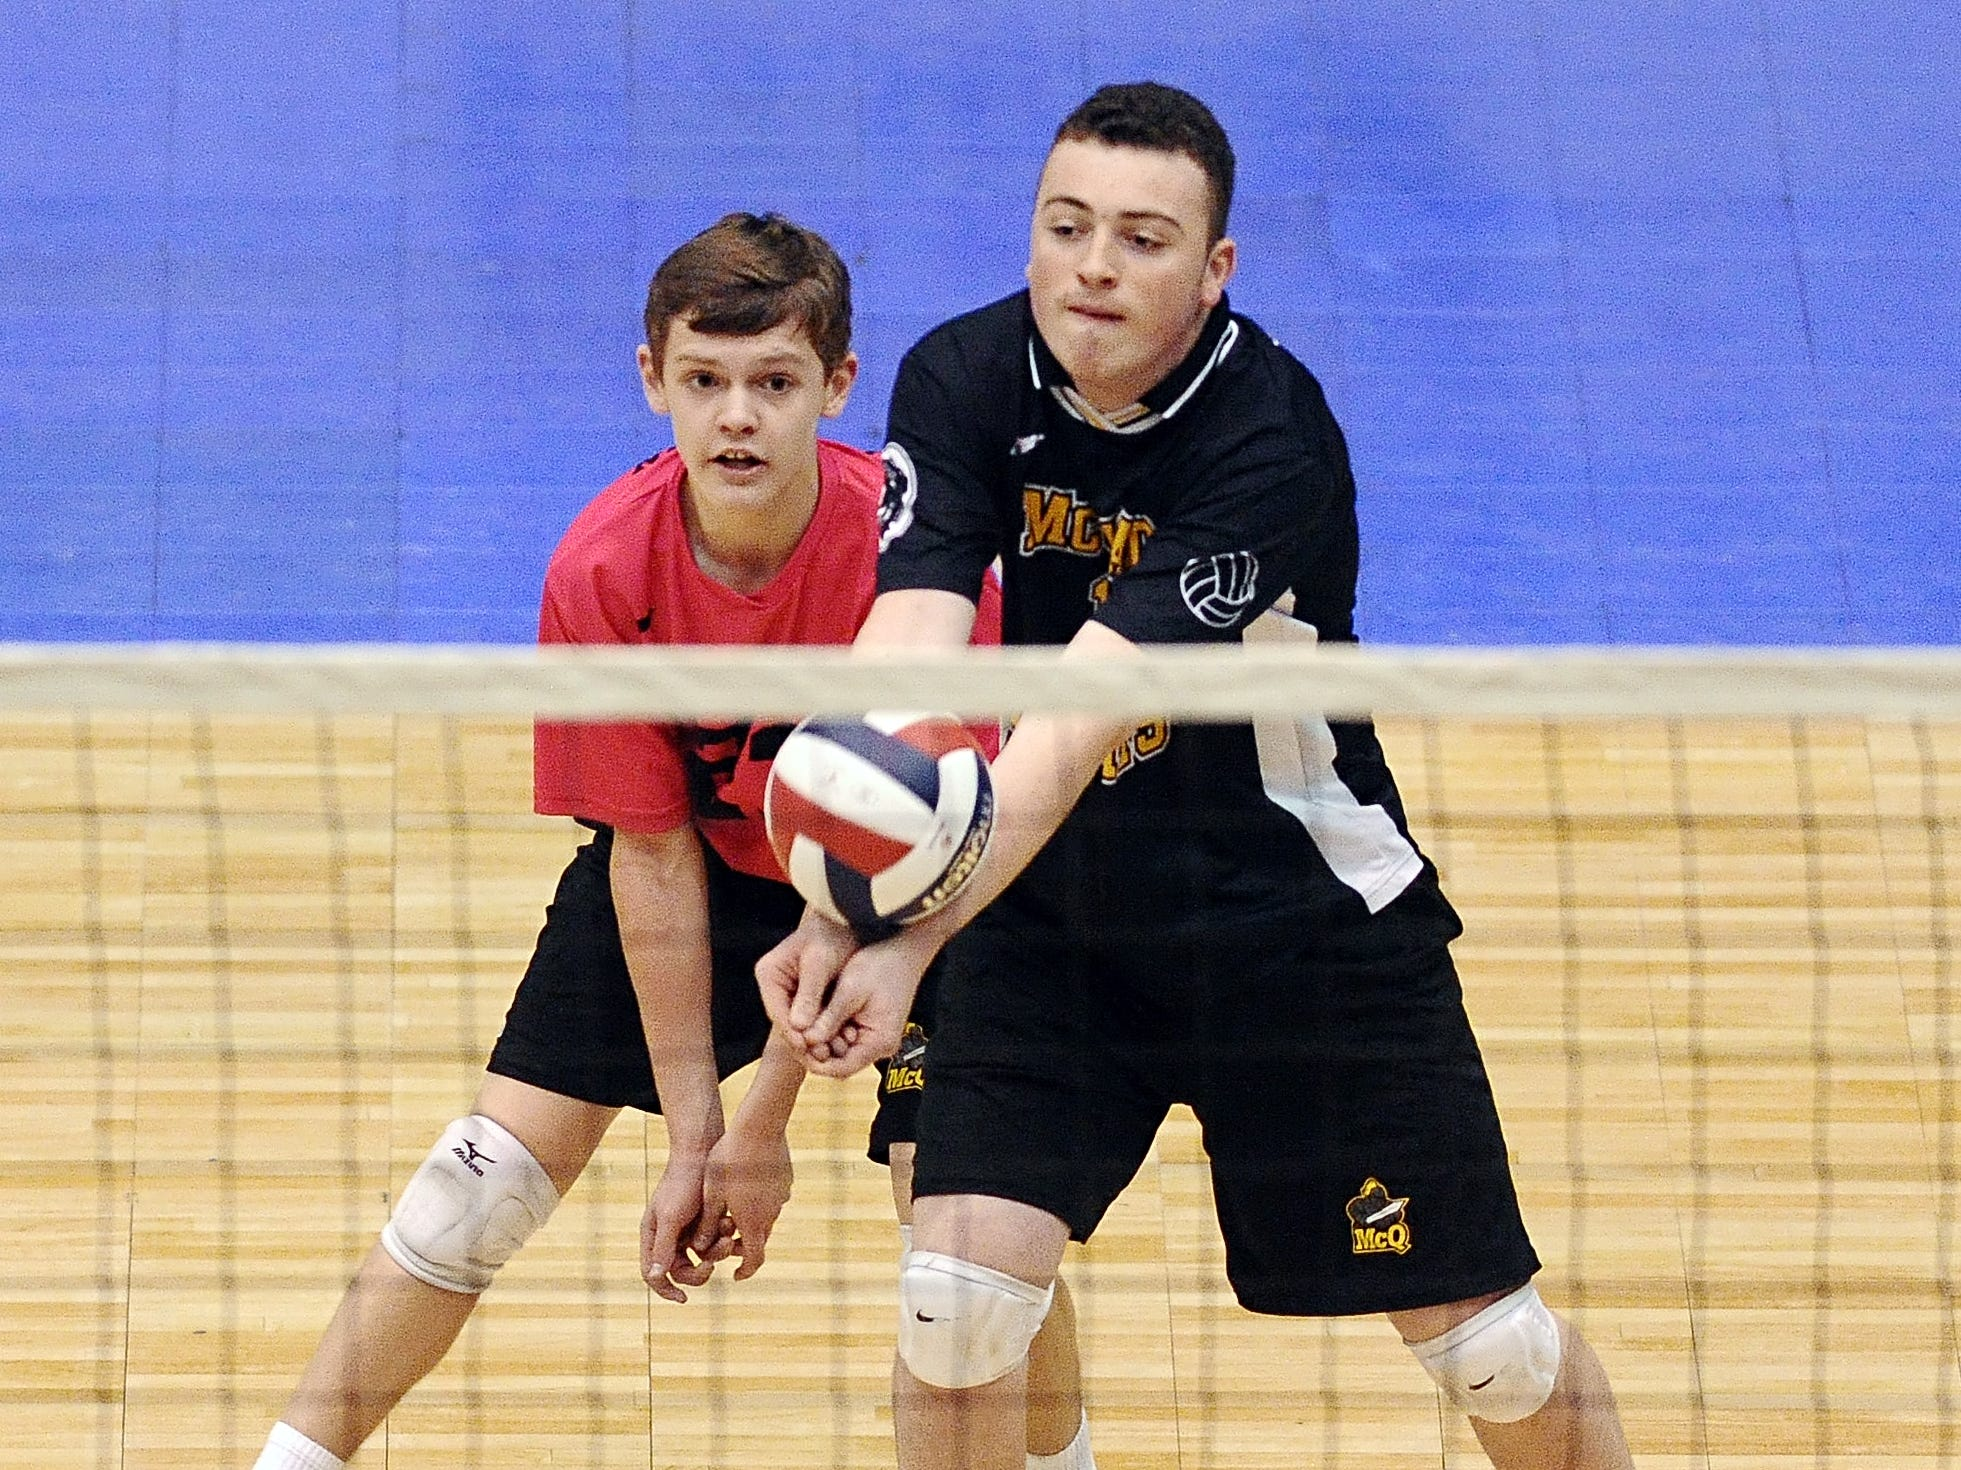 McQuaid's Seamus Darby, front, receives serve against Sachem North during Division 1 pool play at the NYSPHSAA Boy's Volleyball Championships held at the Glens Falls Civic Center on Friday, November 11, 2014.  Sachem North-XI beat McQuaid in both games (25-18, 25-23).